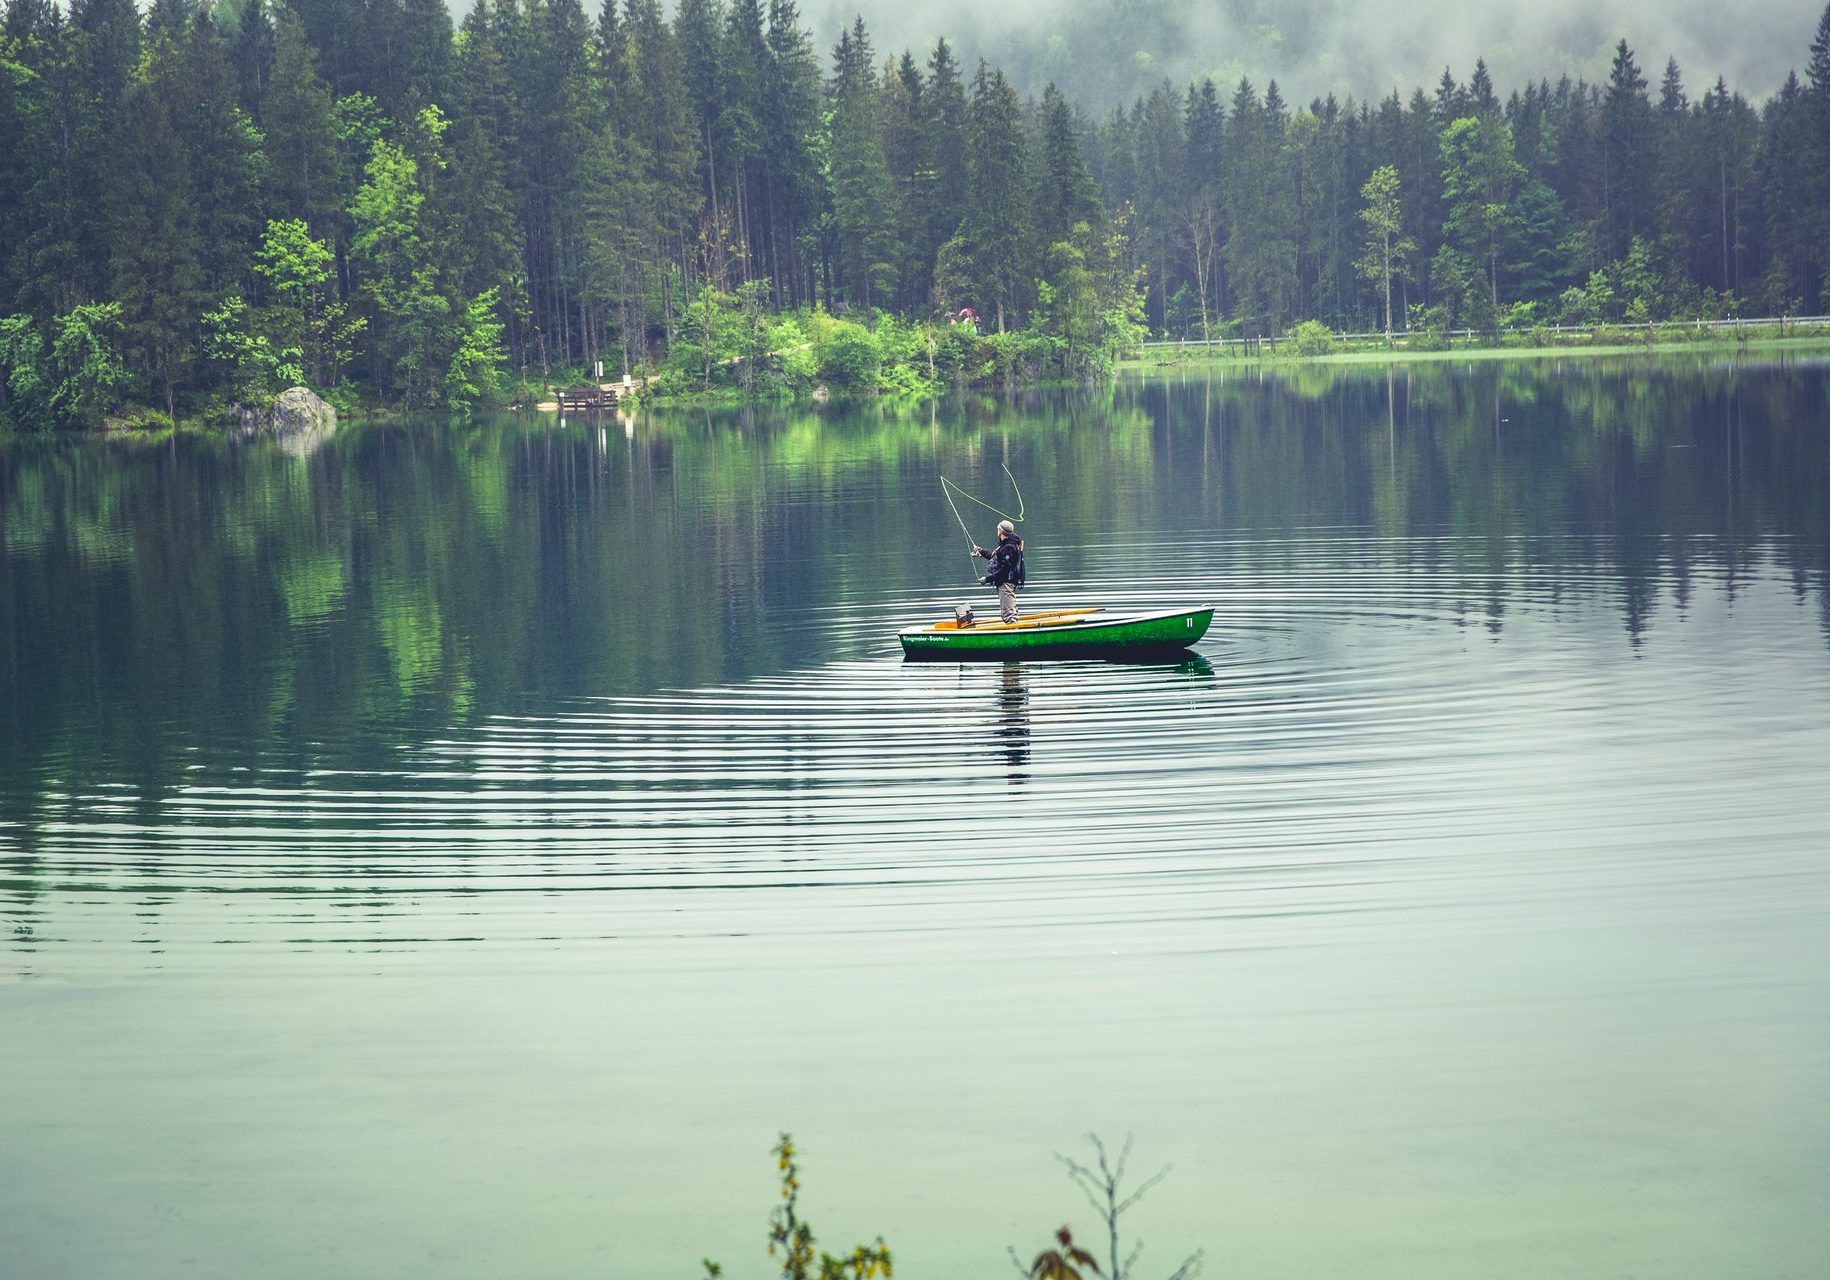 fishing-mountains-nature-person-102730